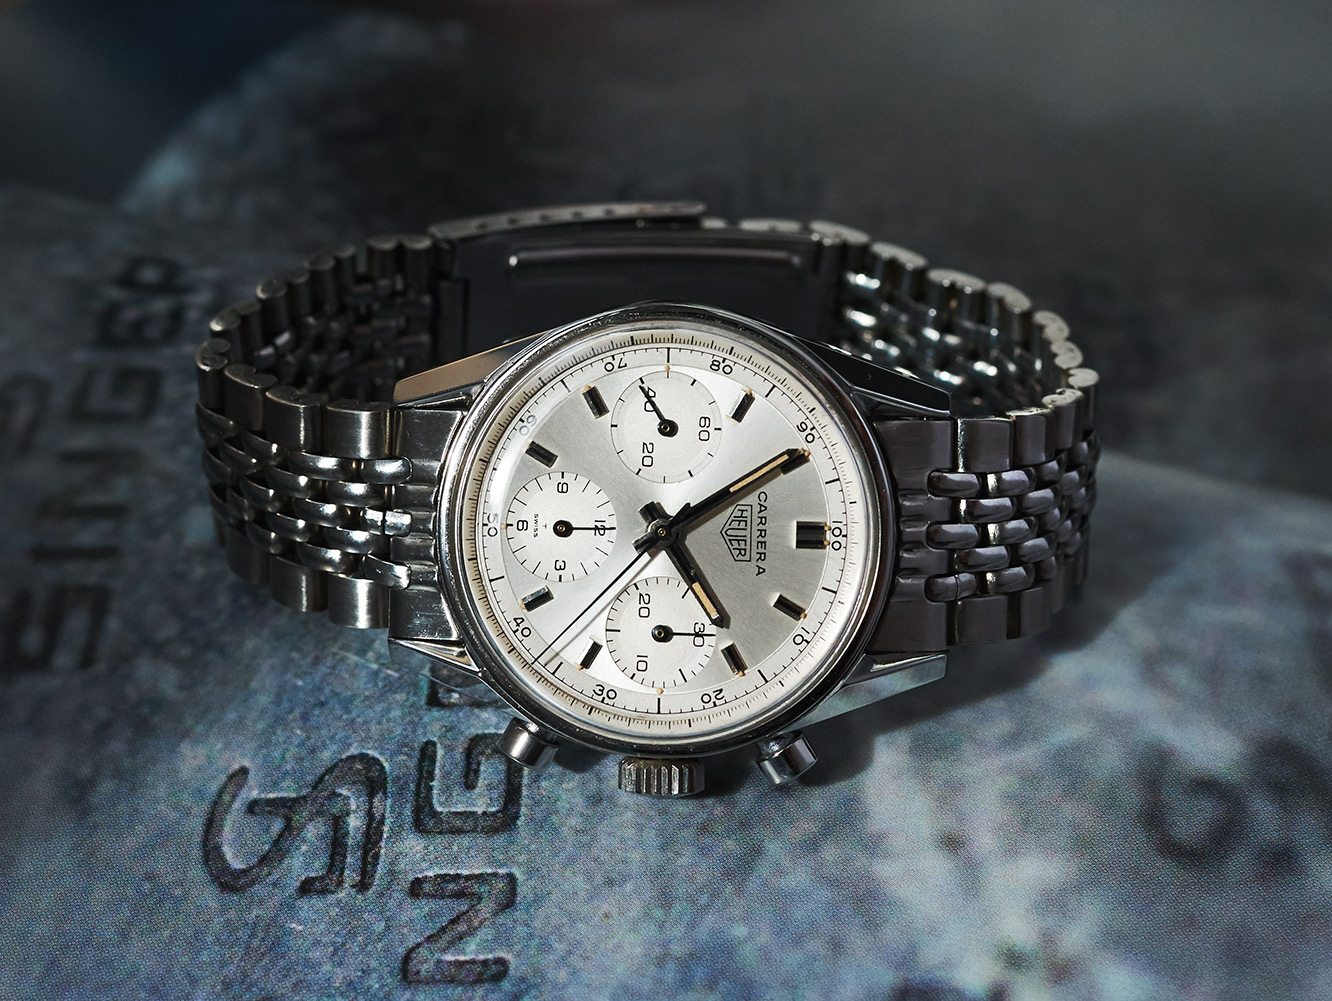 Heuer Carrea 2447sd